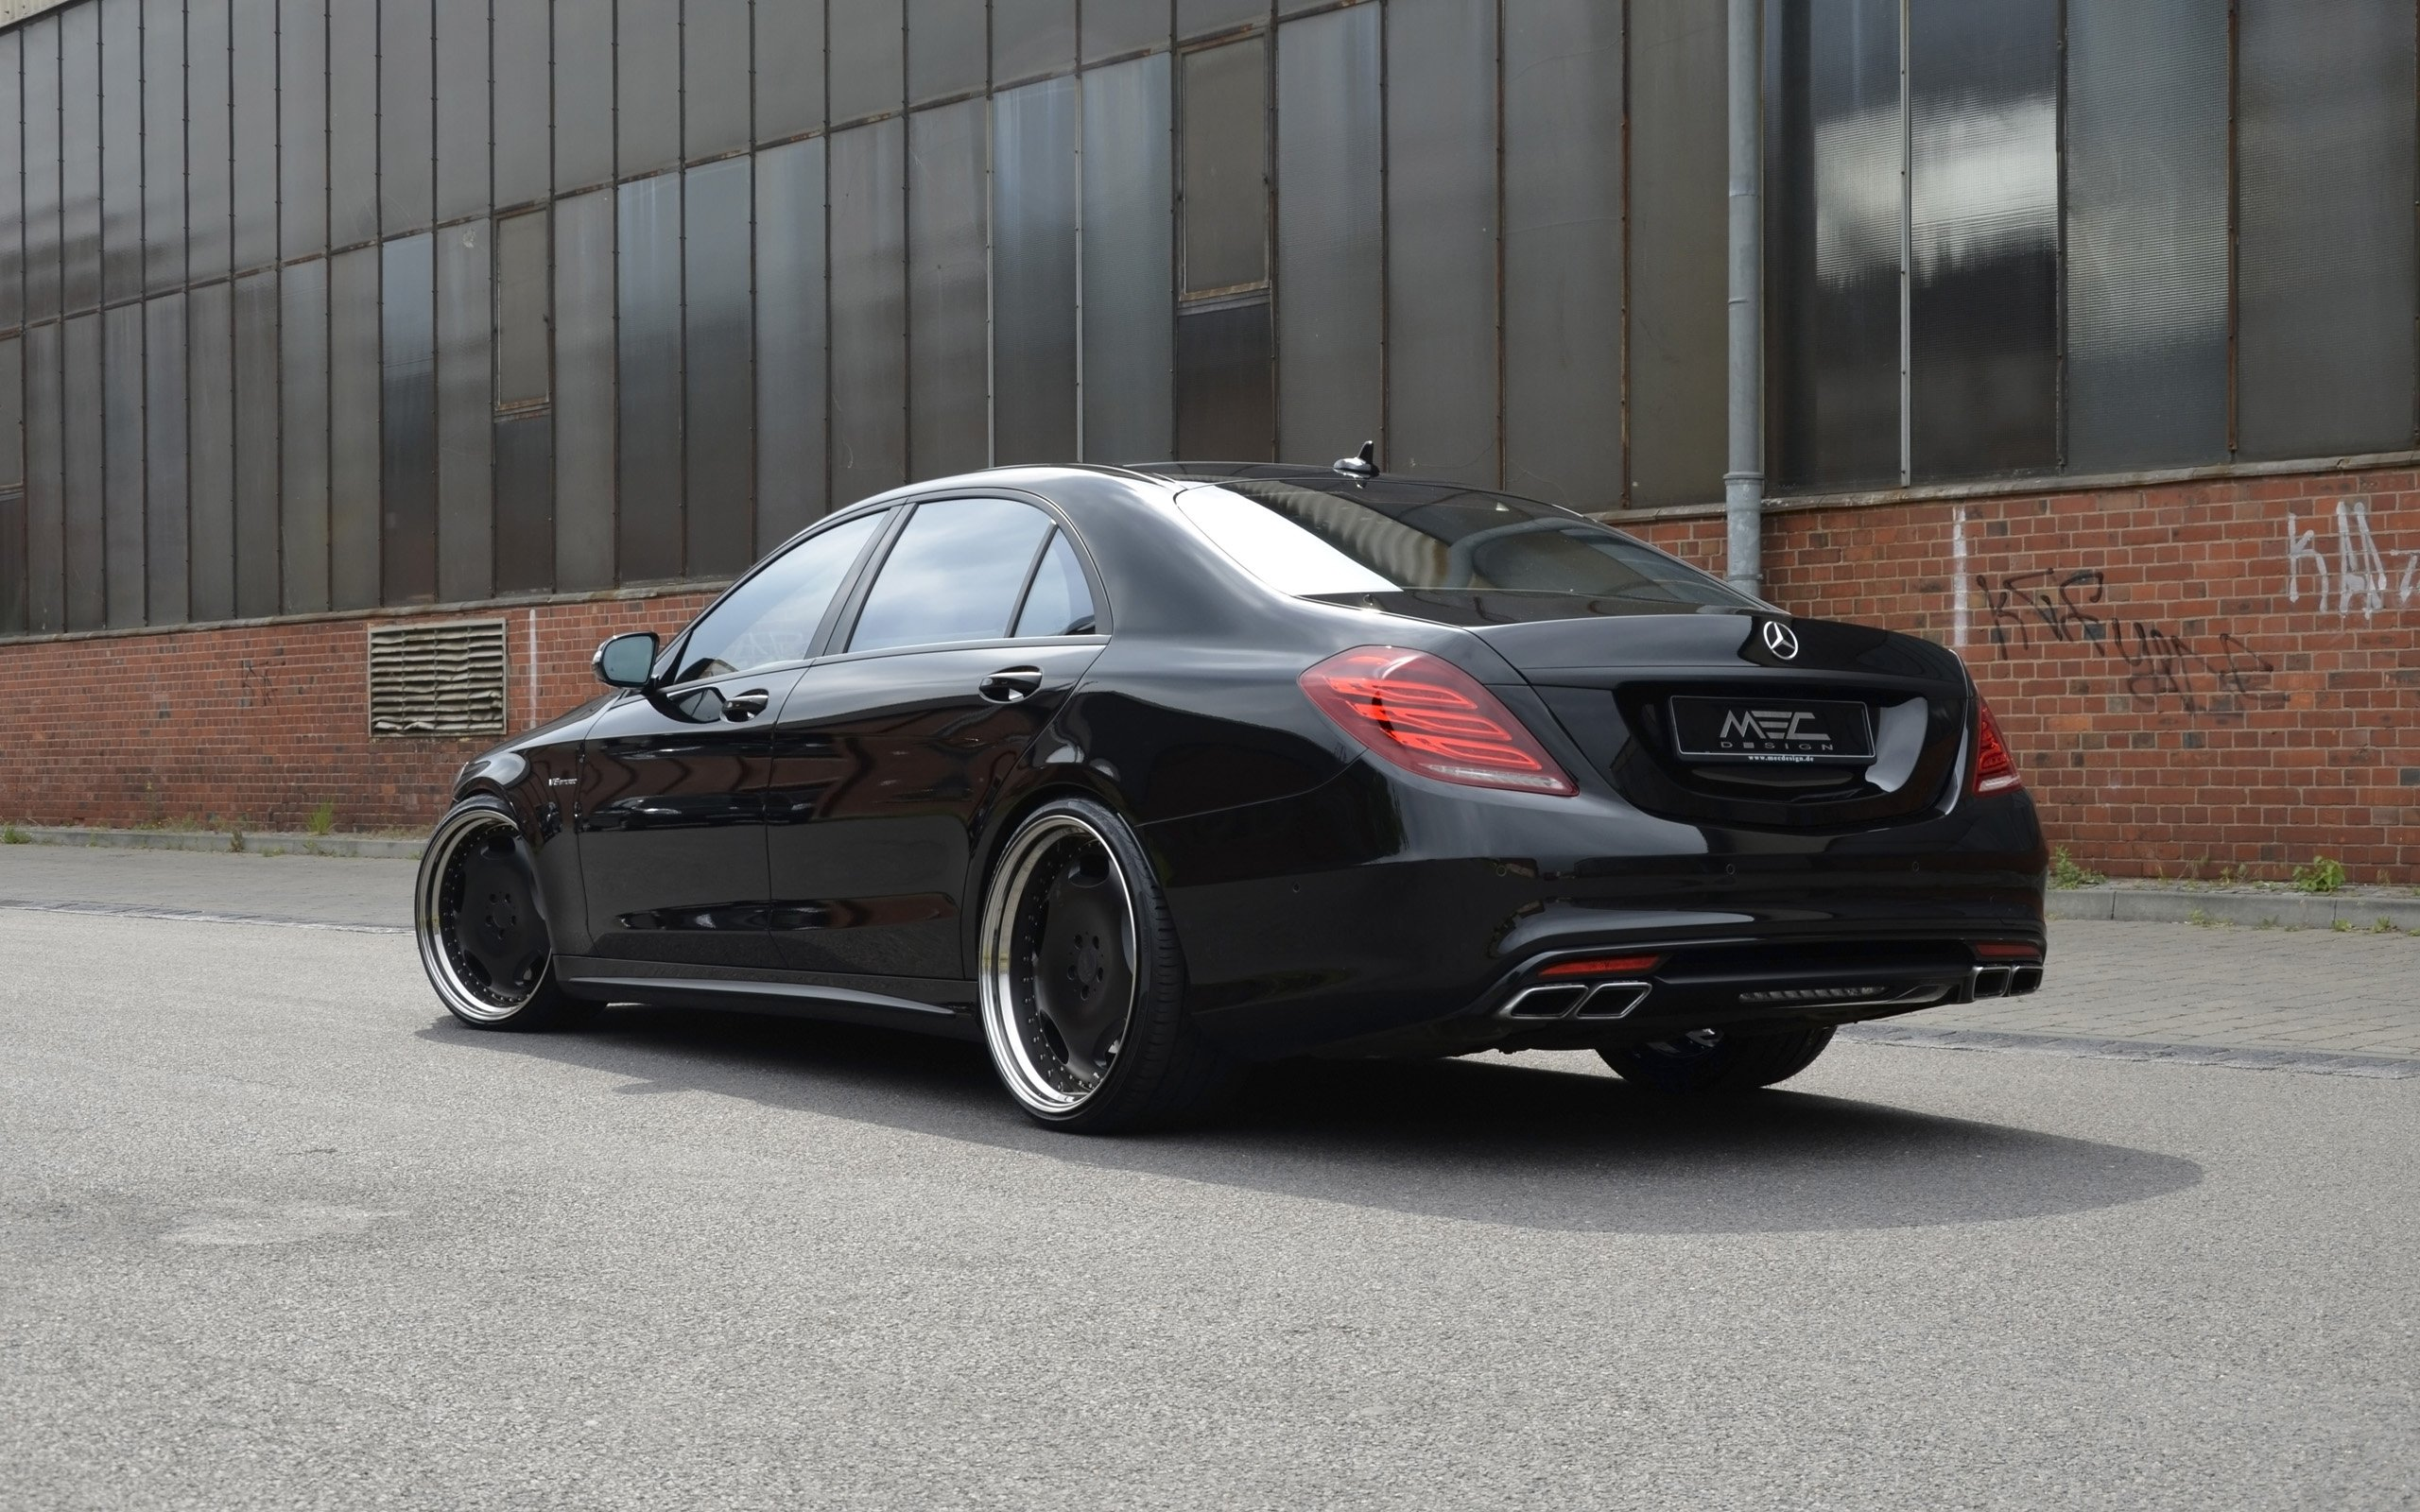 S 63 Amg Wallpaper: 2014 MEC Design Mercedes Benz S63 AMG Wallpaper